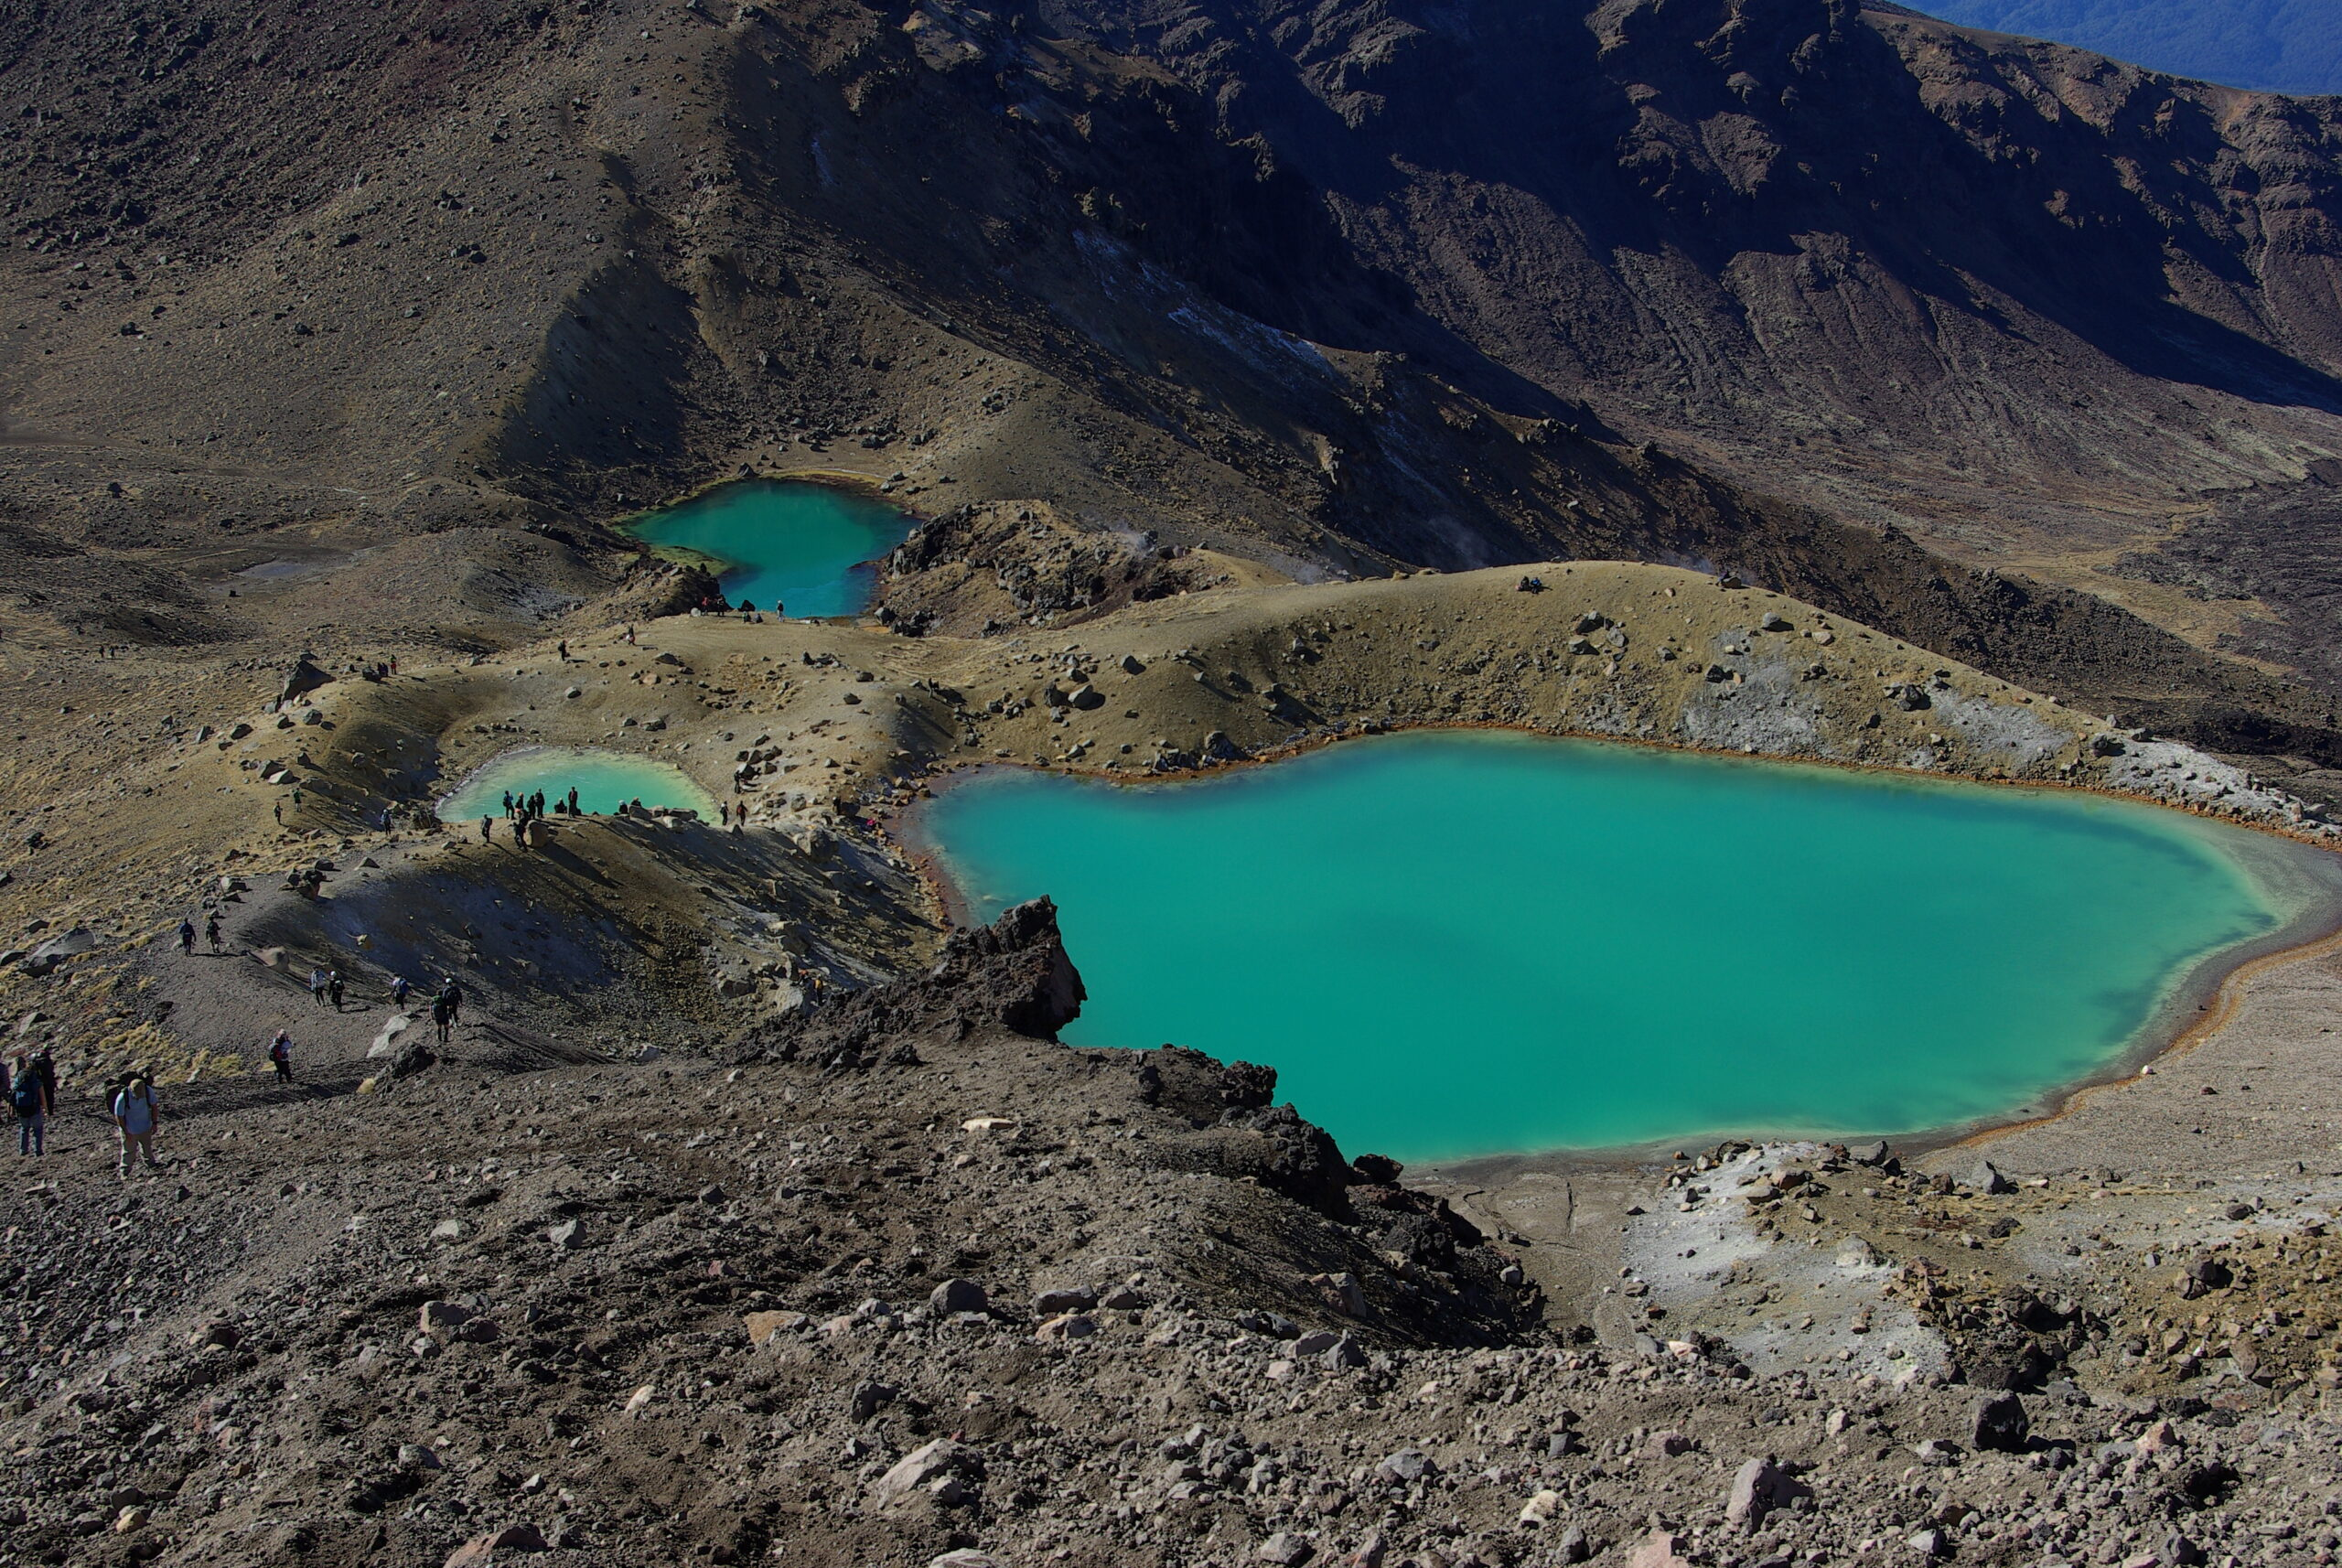 Plan your Tongariro Crossing from Tui Lodge luxury accommodation in Turangi